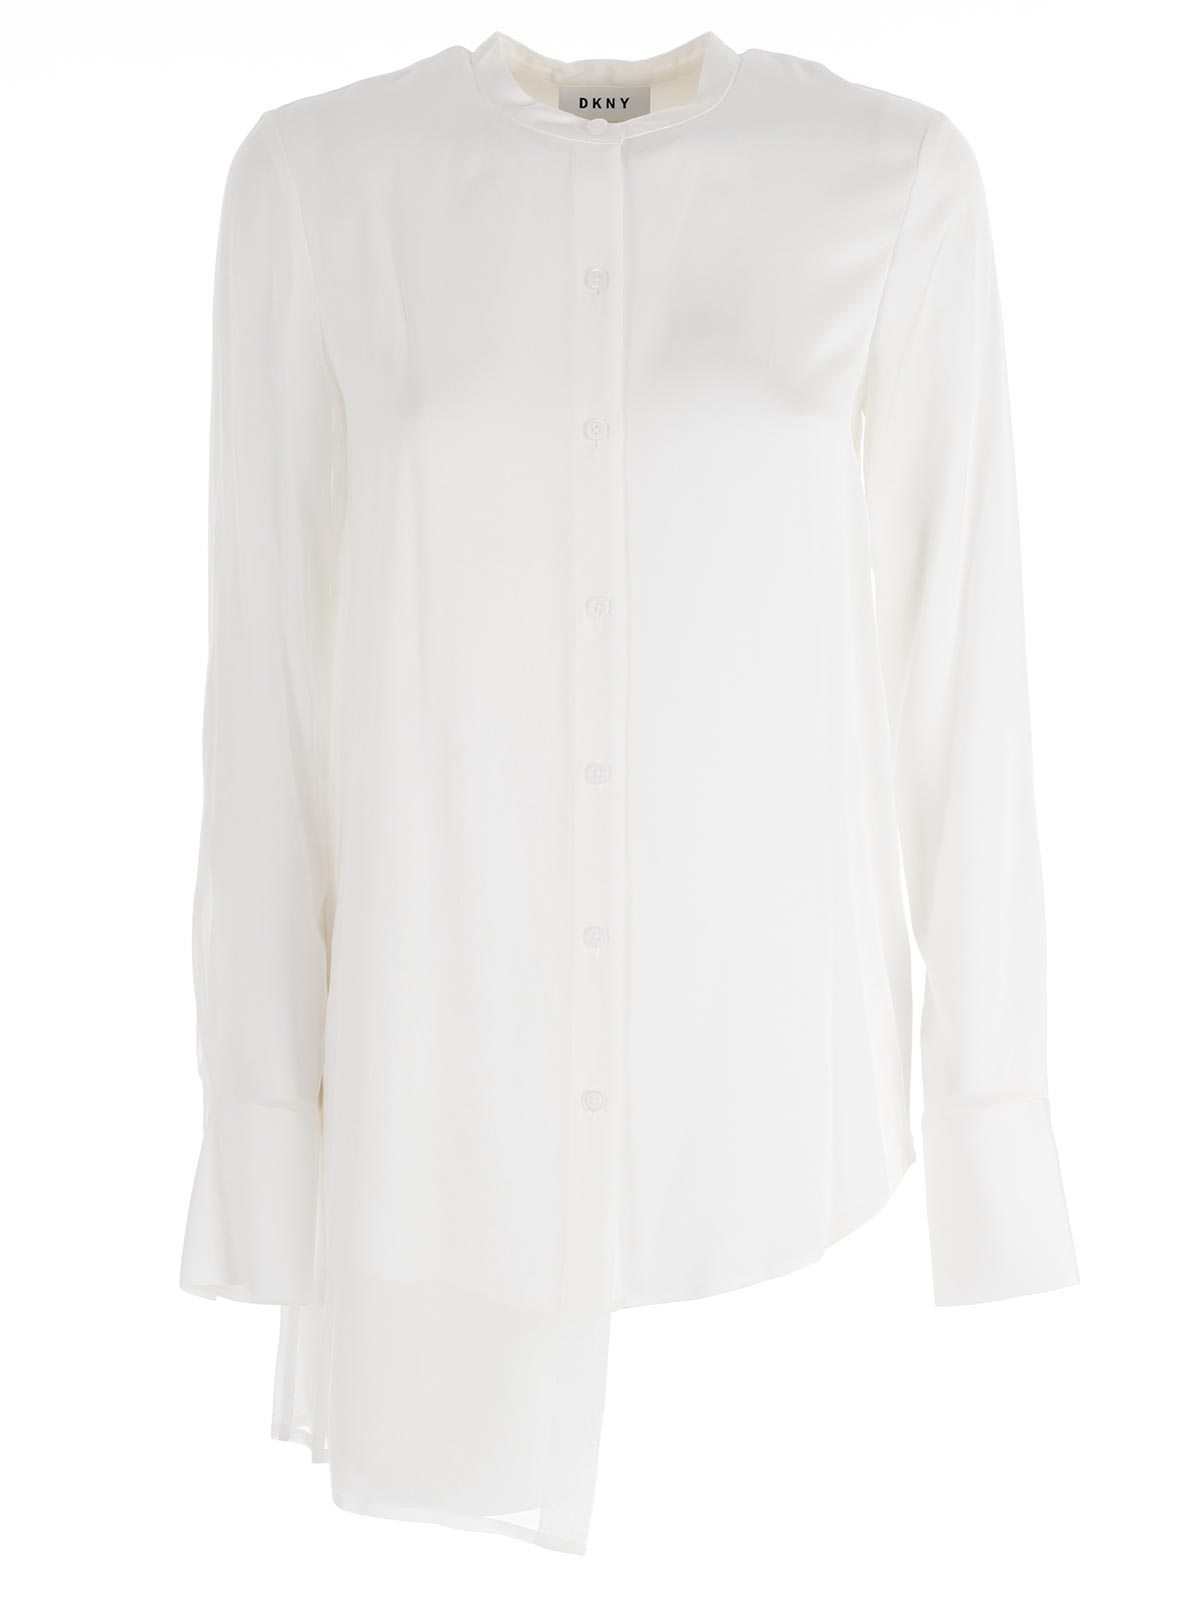 Picture of DKNY SHIRTS